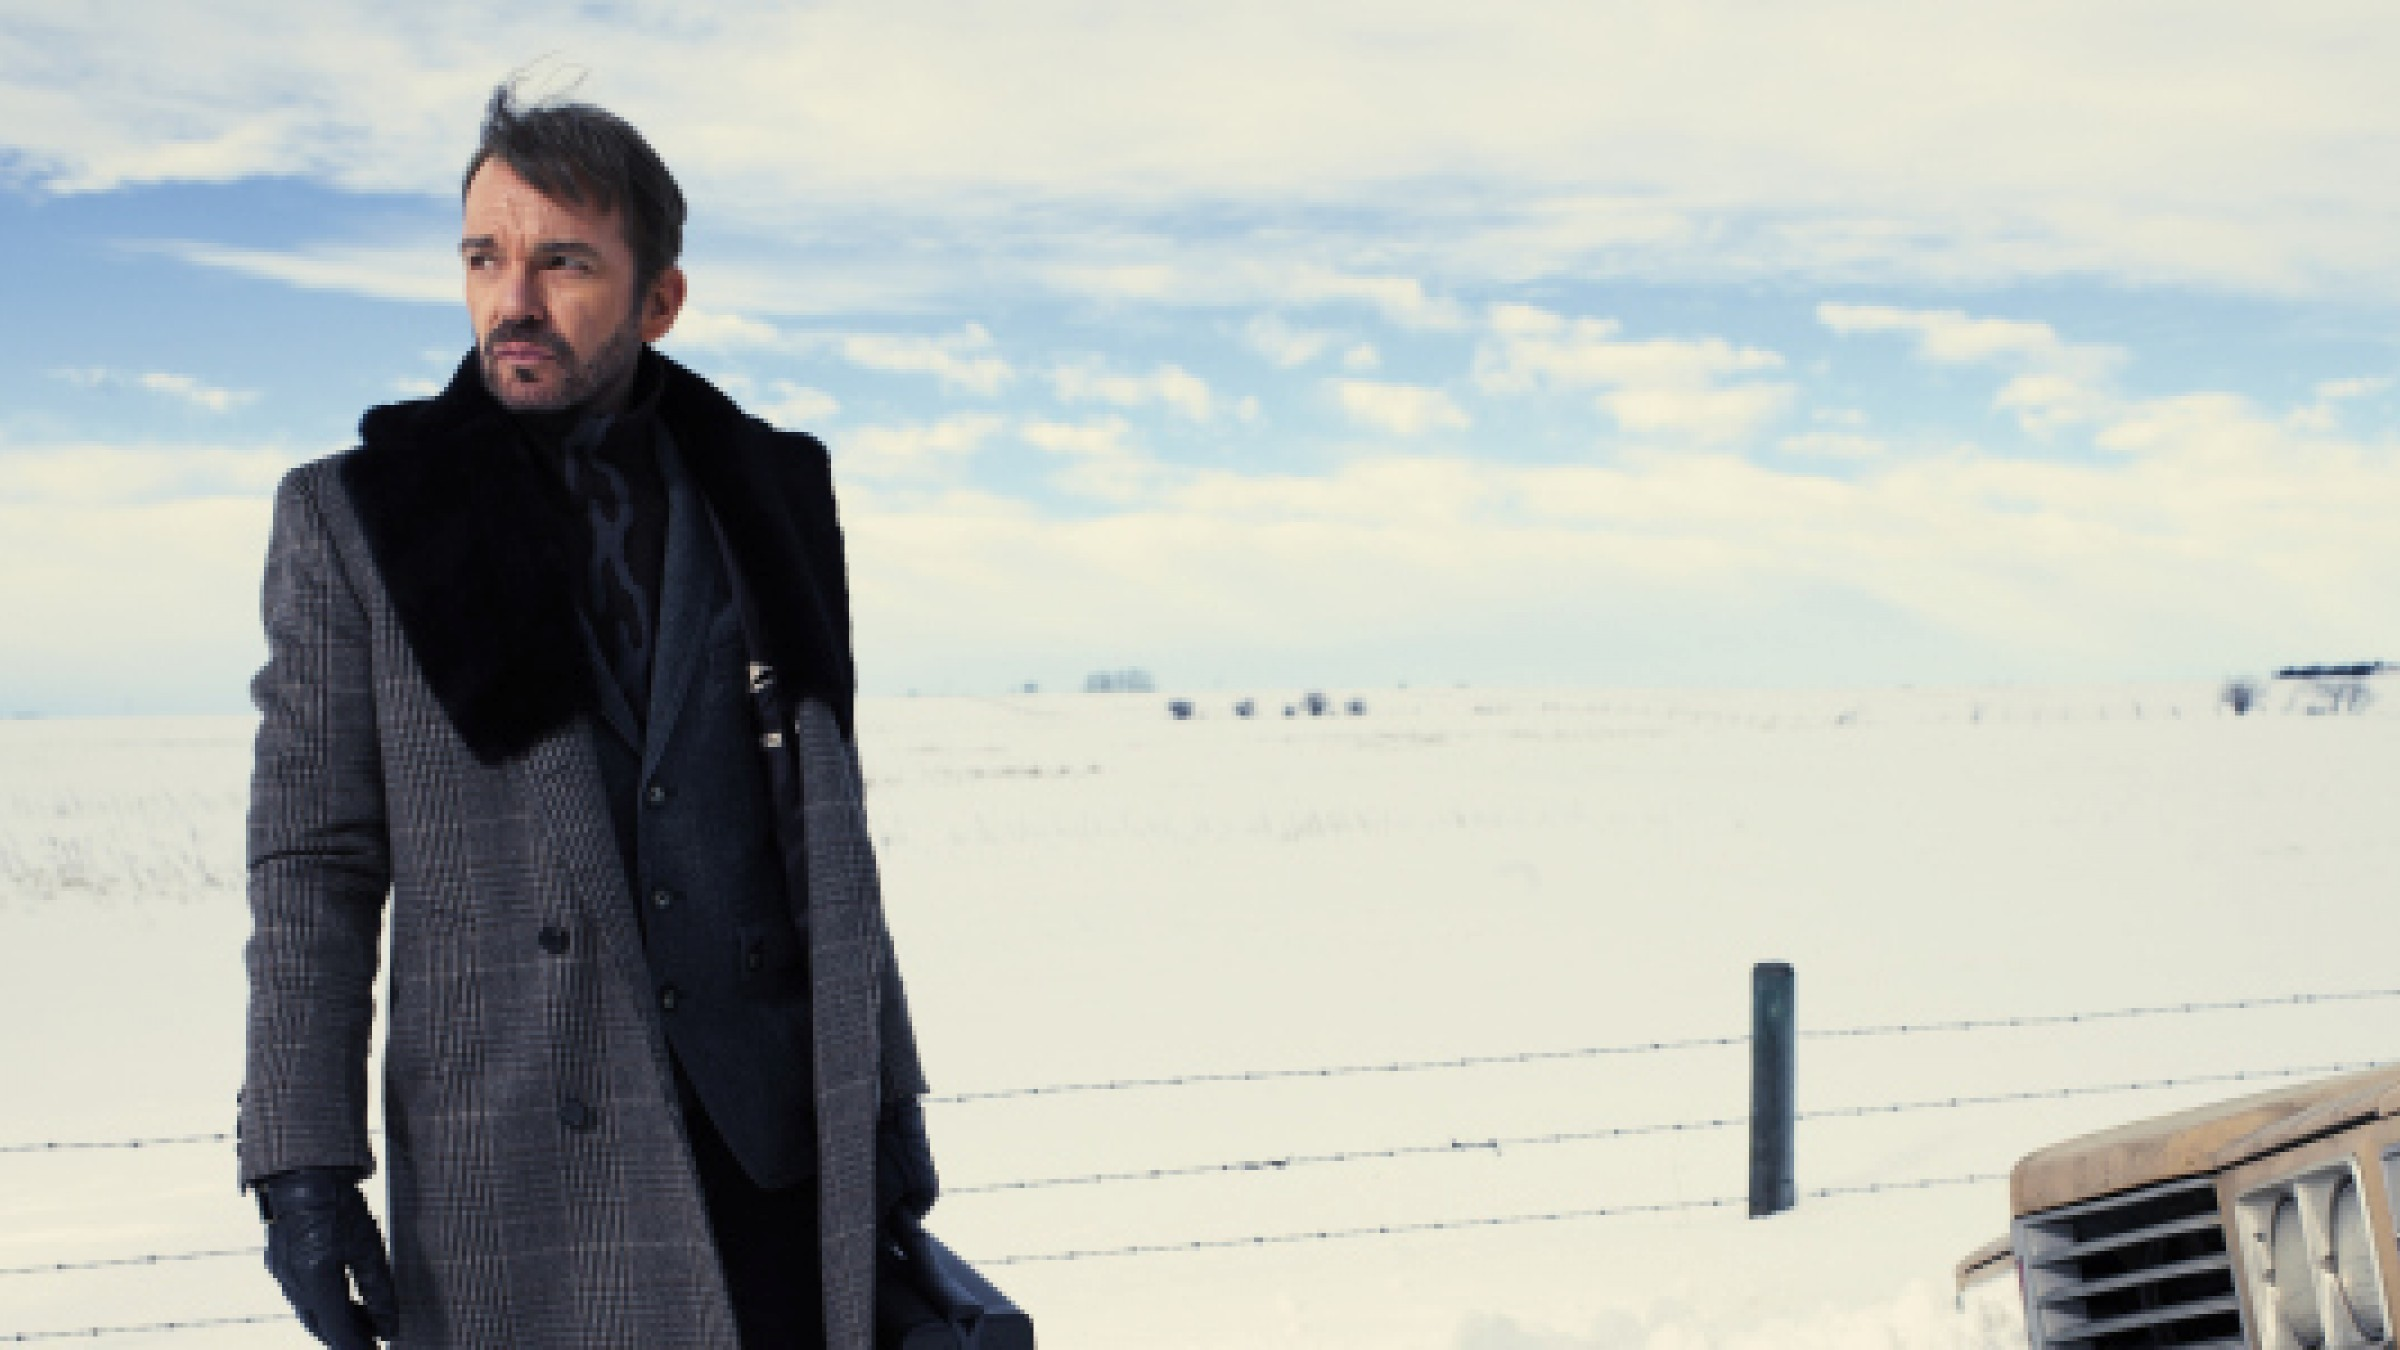 The DP of 'Fargo' Talks About Why Location Matters & How to Succeed in the Film Industry